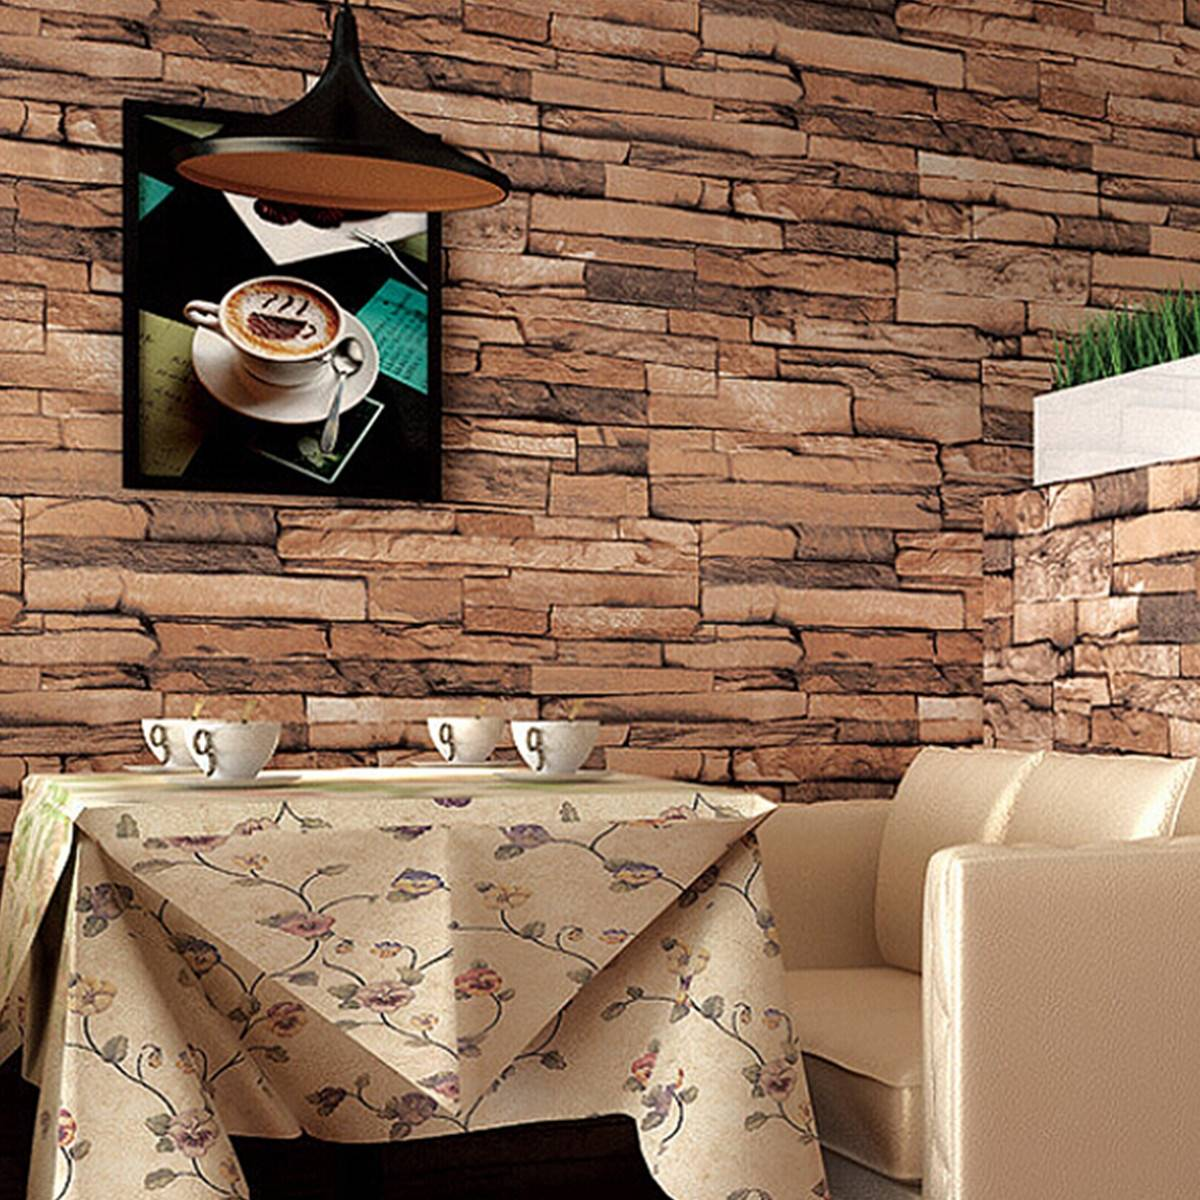 10m 3d Wallpaper Roll Pvc Brick Grain Waterproof Wallpaper Natural Wood Pulp Dull Polish Wall Decor